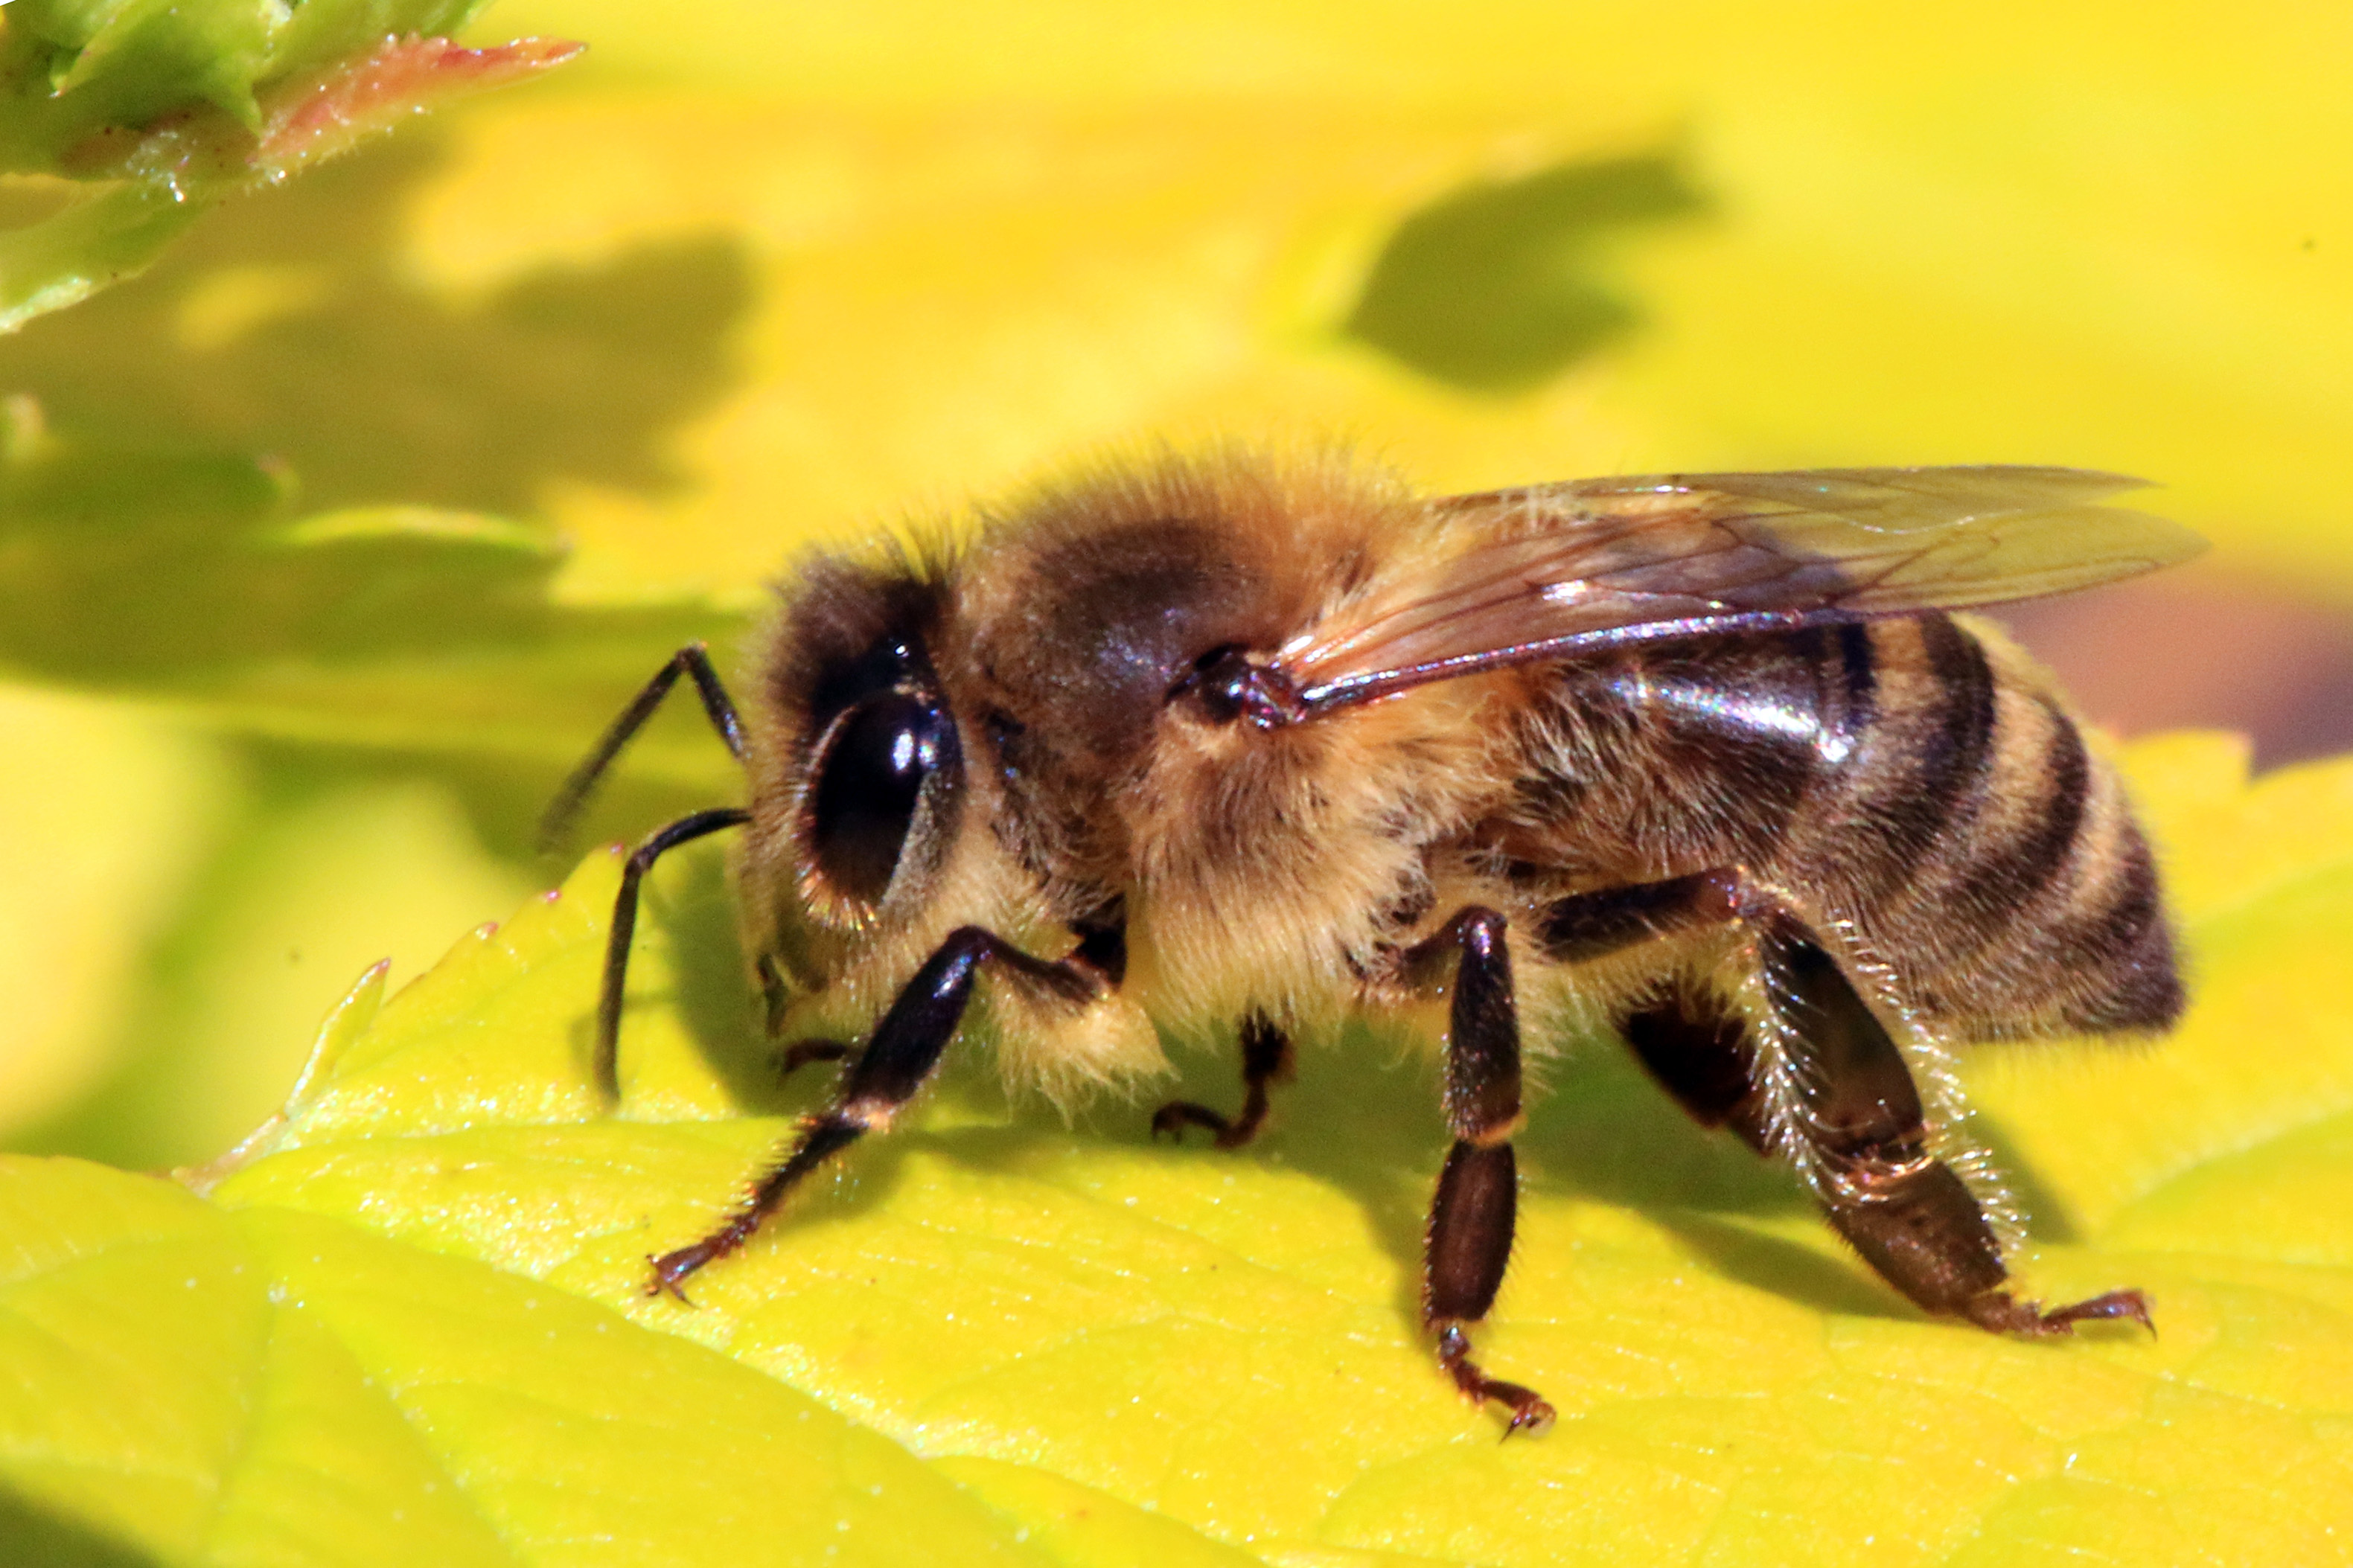 File:Honey bee (Apis mellifera).jpg - Wikimedia Commons